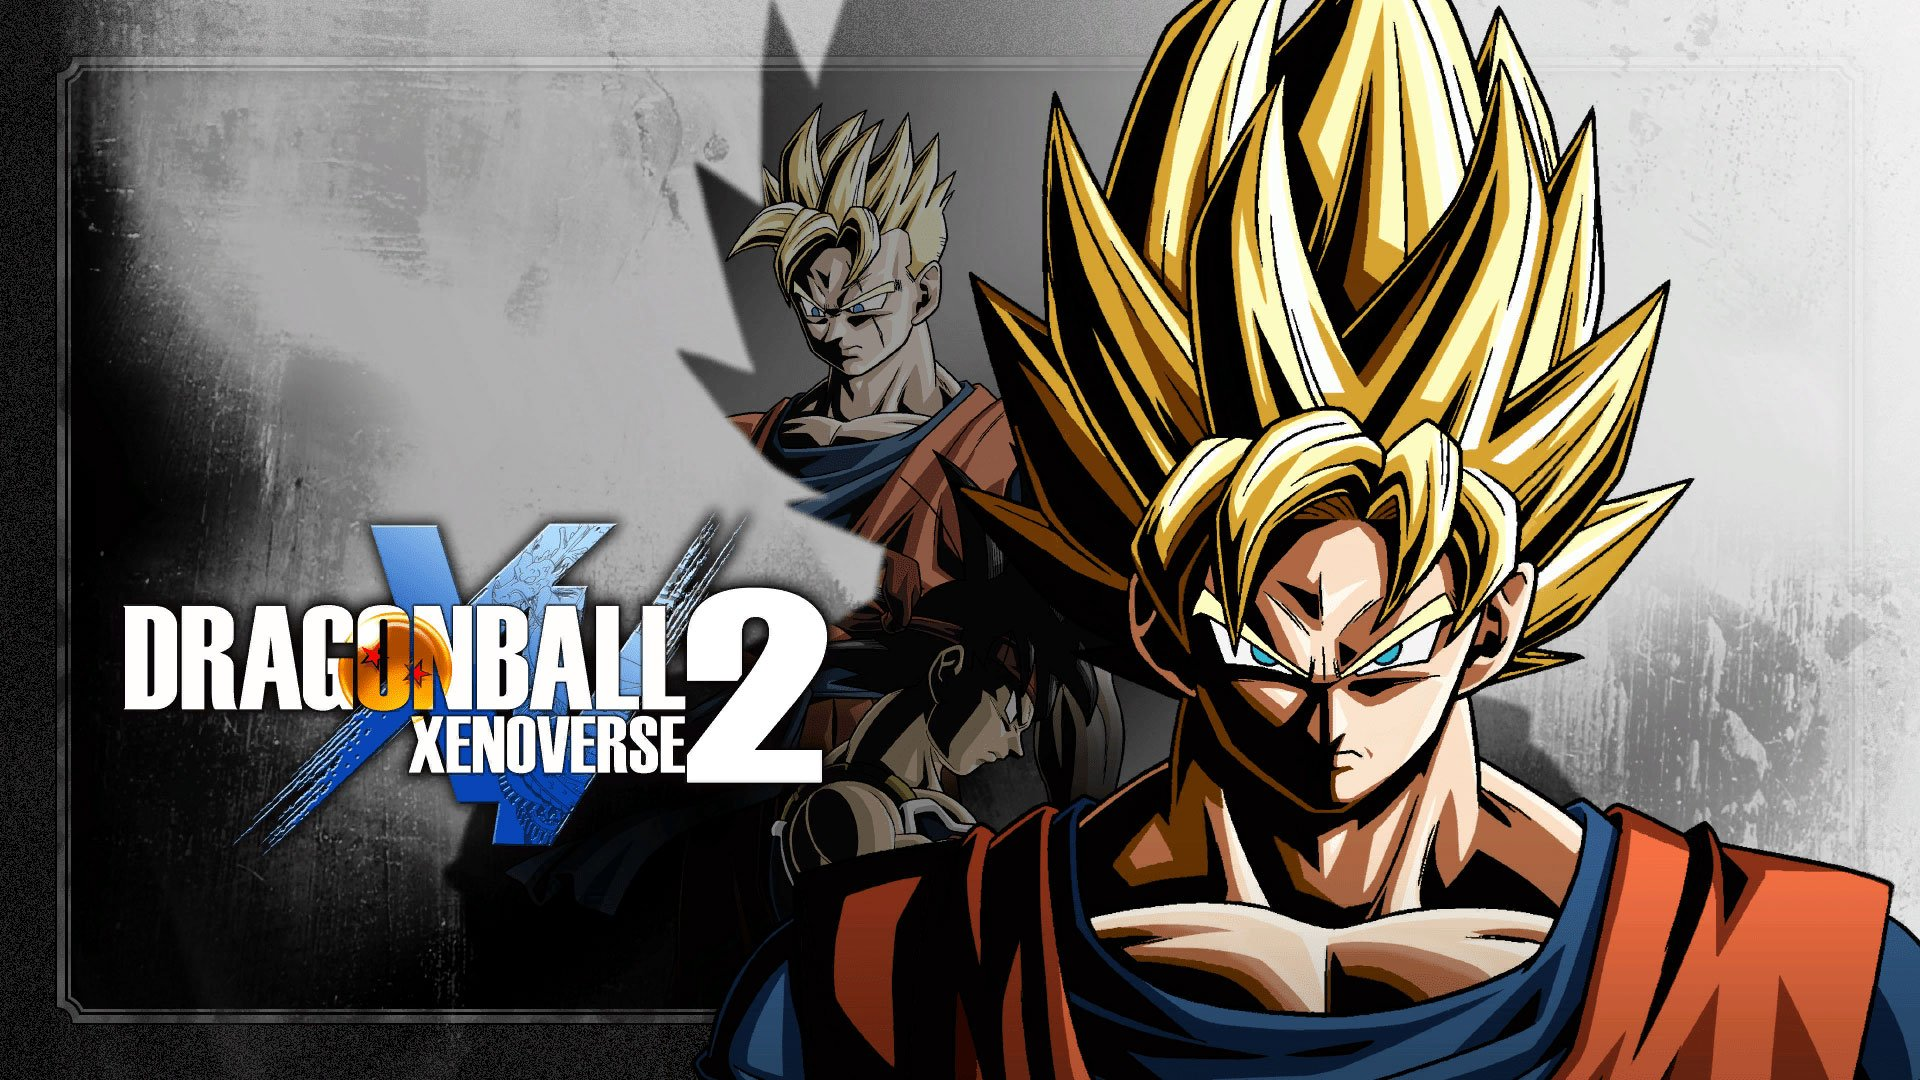 Dragon Ball Xenoverse 2 HD Wallpapers and Background Images 1920x1080